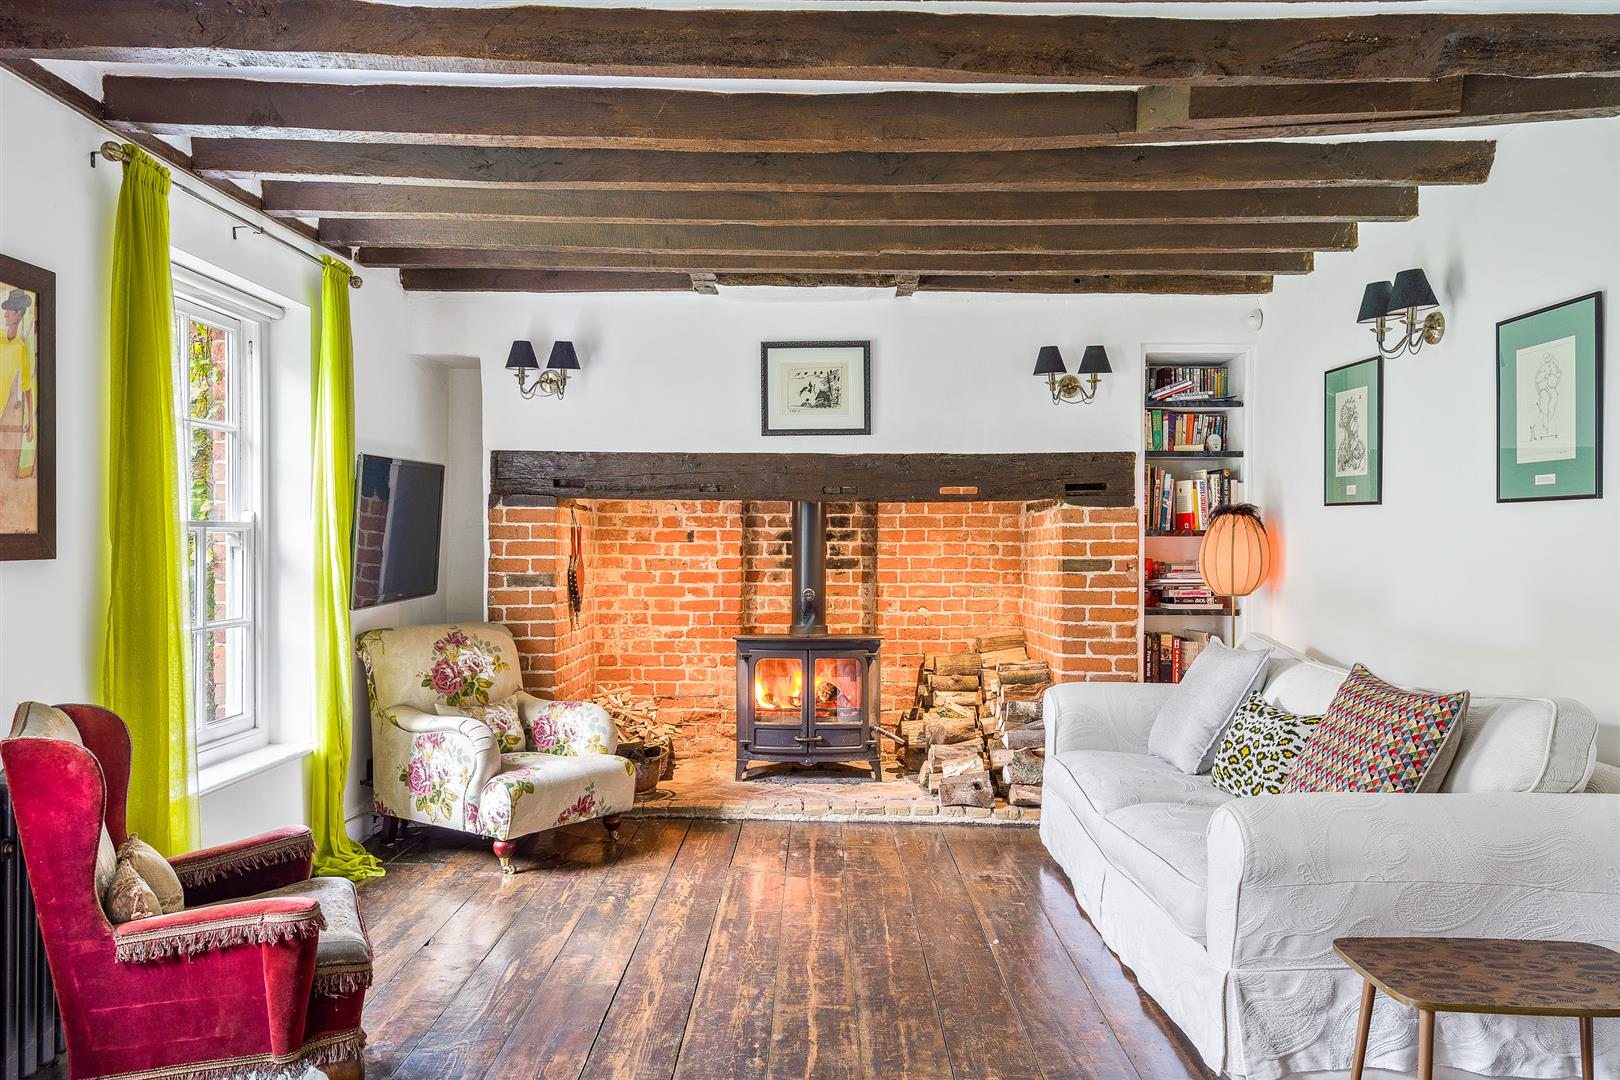 Traditional open Inglenook fireplace with wood burning stove in cottage